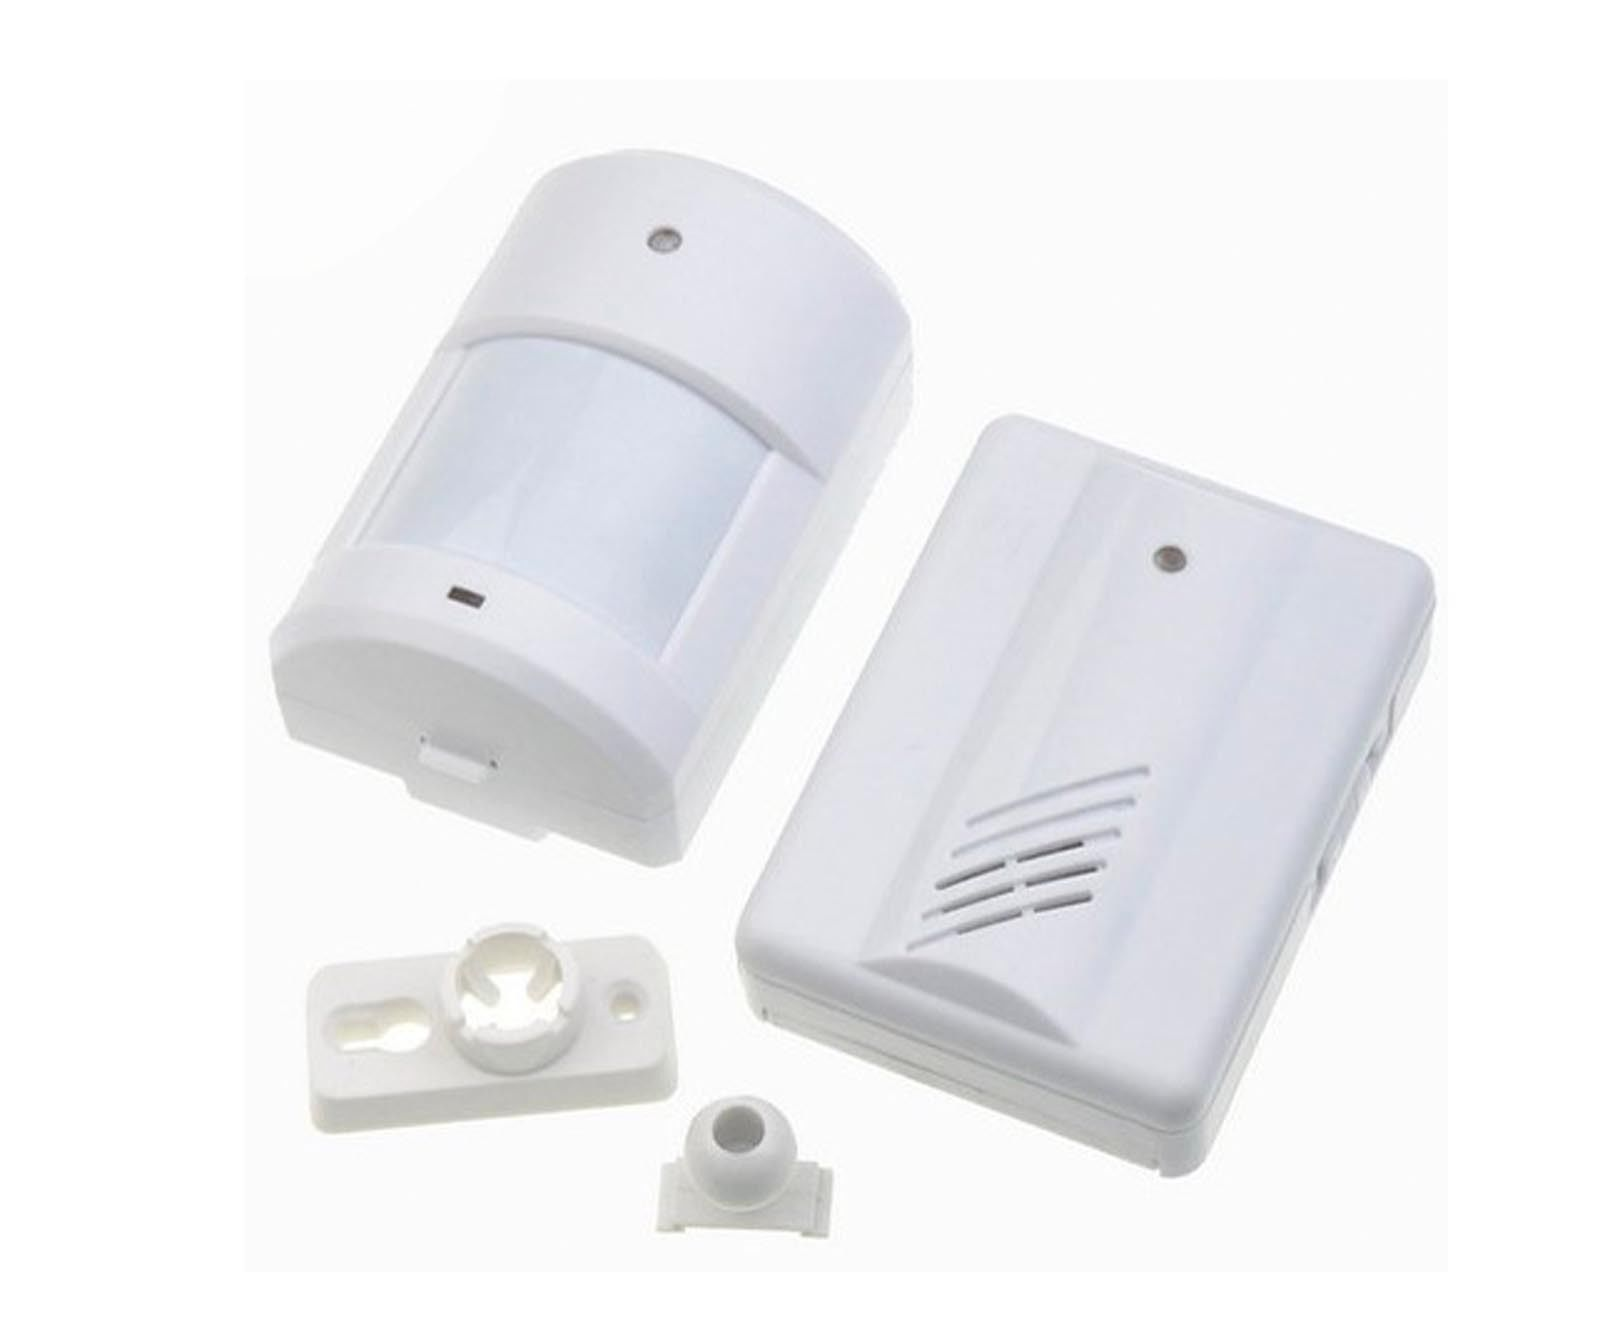 13 94 Aud Driveway Patrol Infrared Wireless Doorbell Alarm System Motion Sensor 400ft Ebay Home Garden